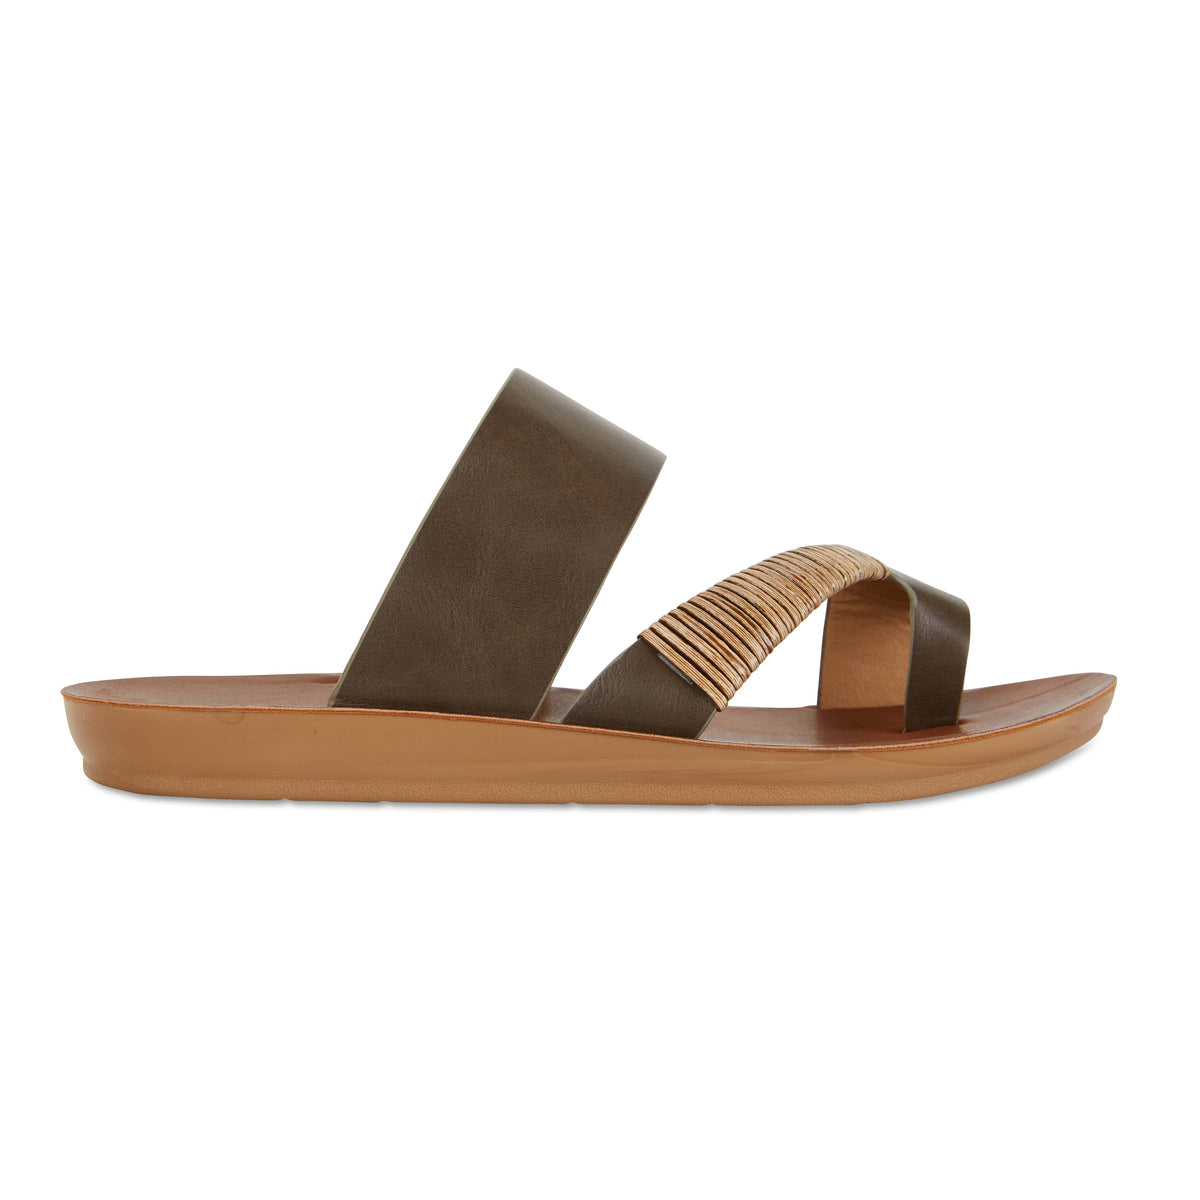 Gidget Sandal in Khaki Smooth